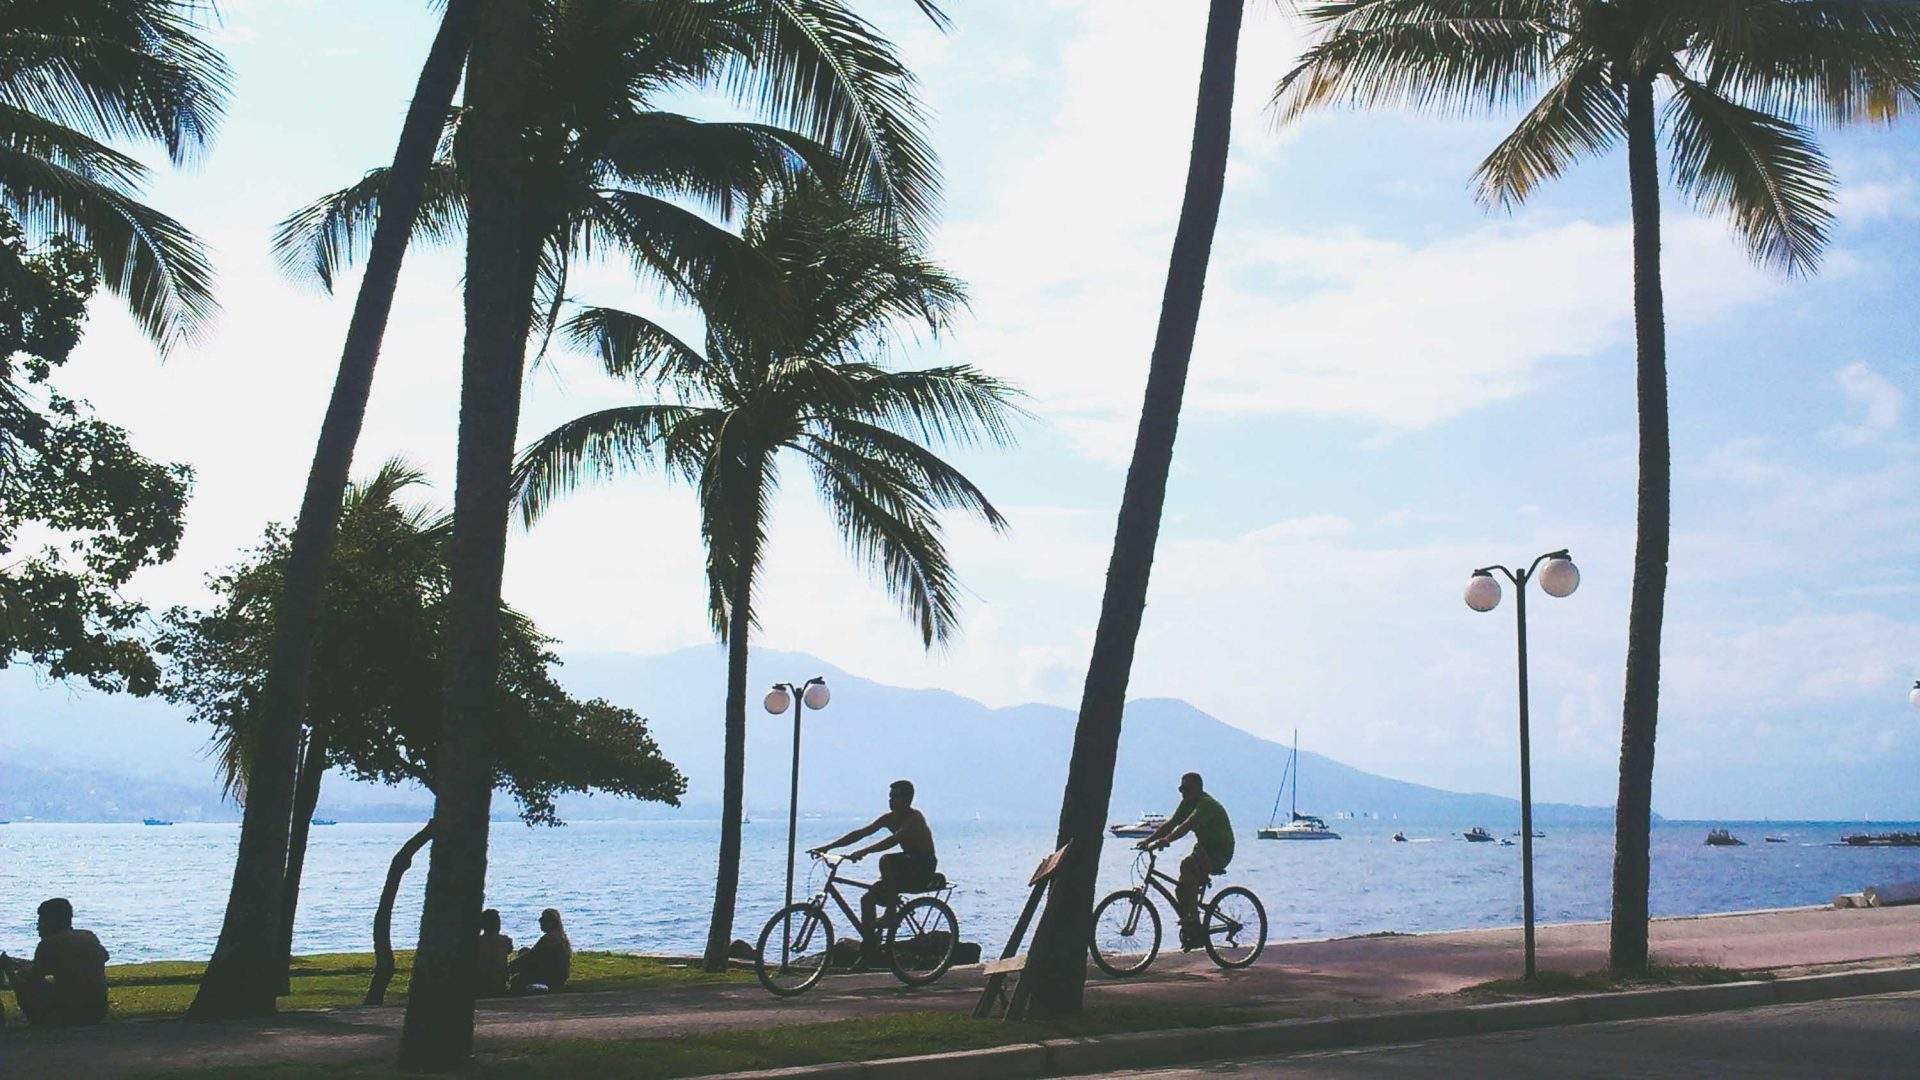 People ride along the boulevard in Ilhabela, Brazil.